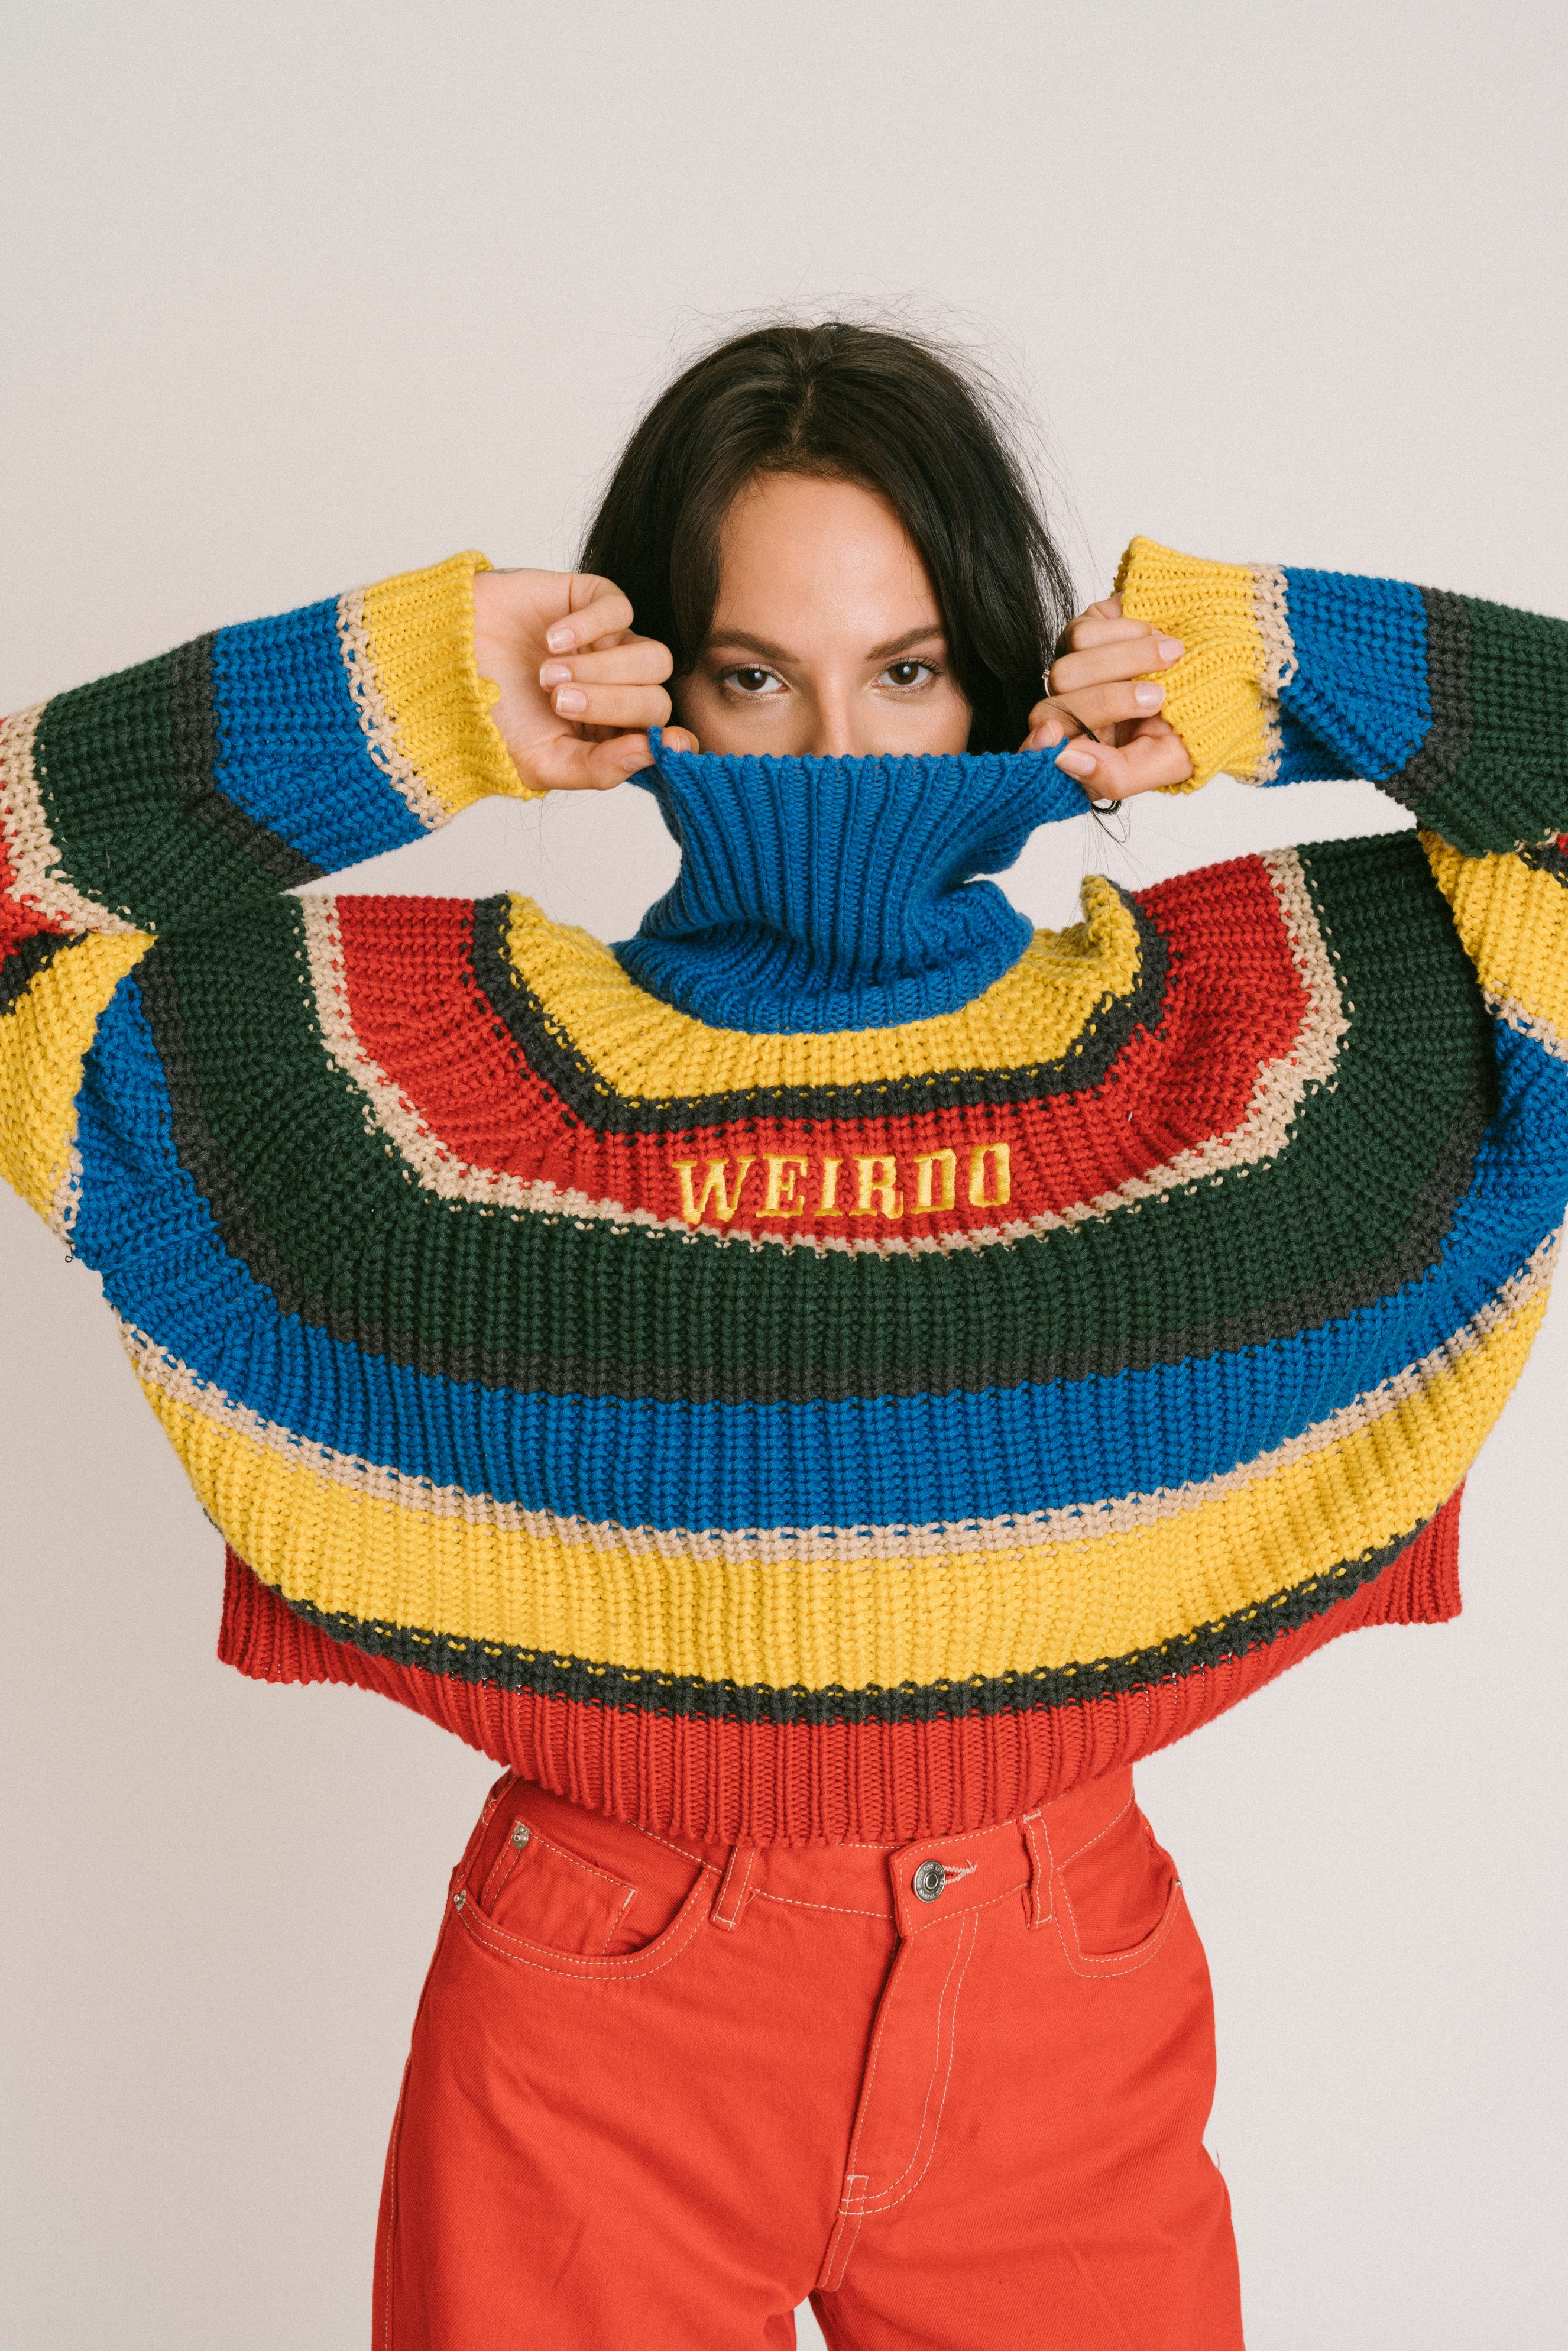 Weirdo Knitted Striped Jumper Aesthetic Clothes Retro Outfits 90s Fashion Outfits